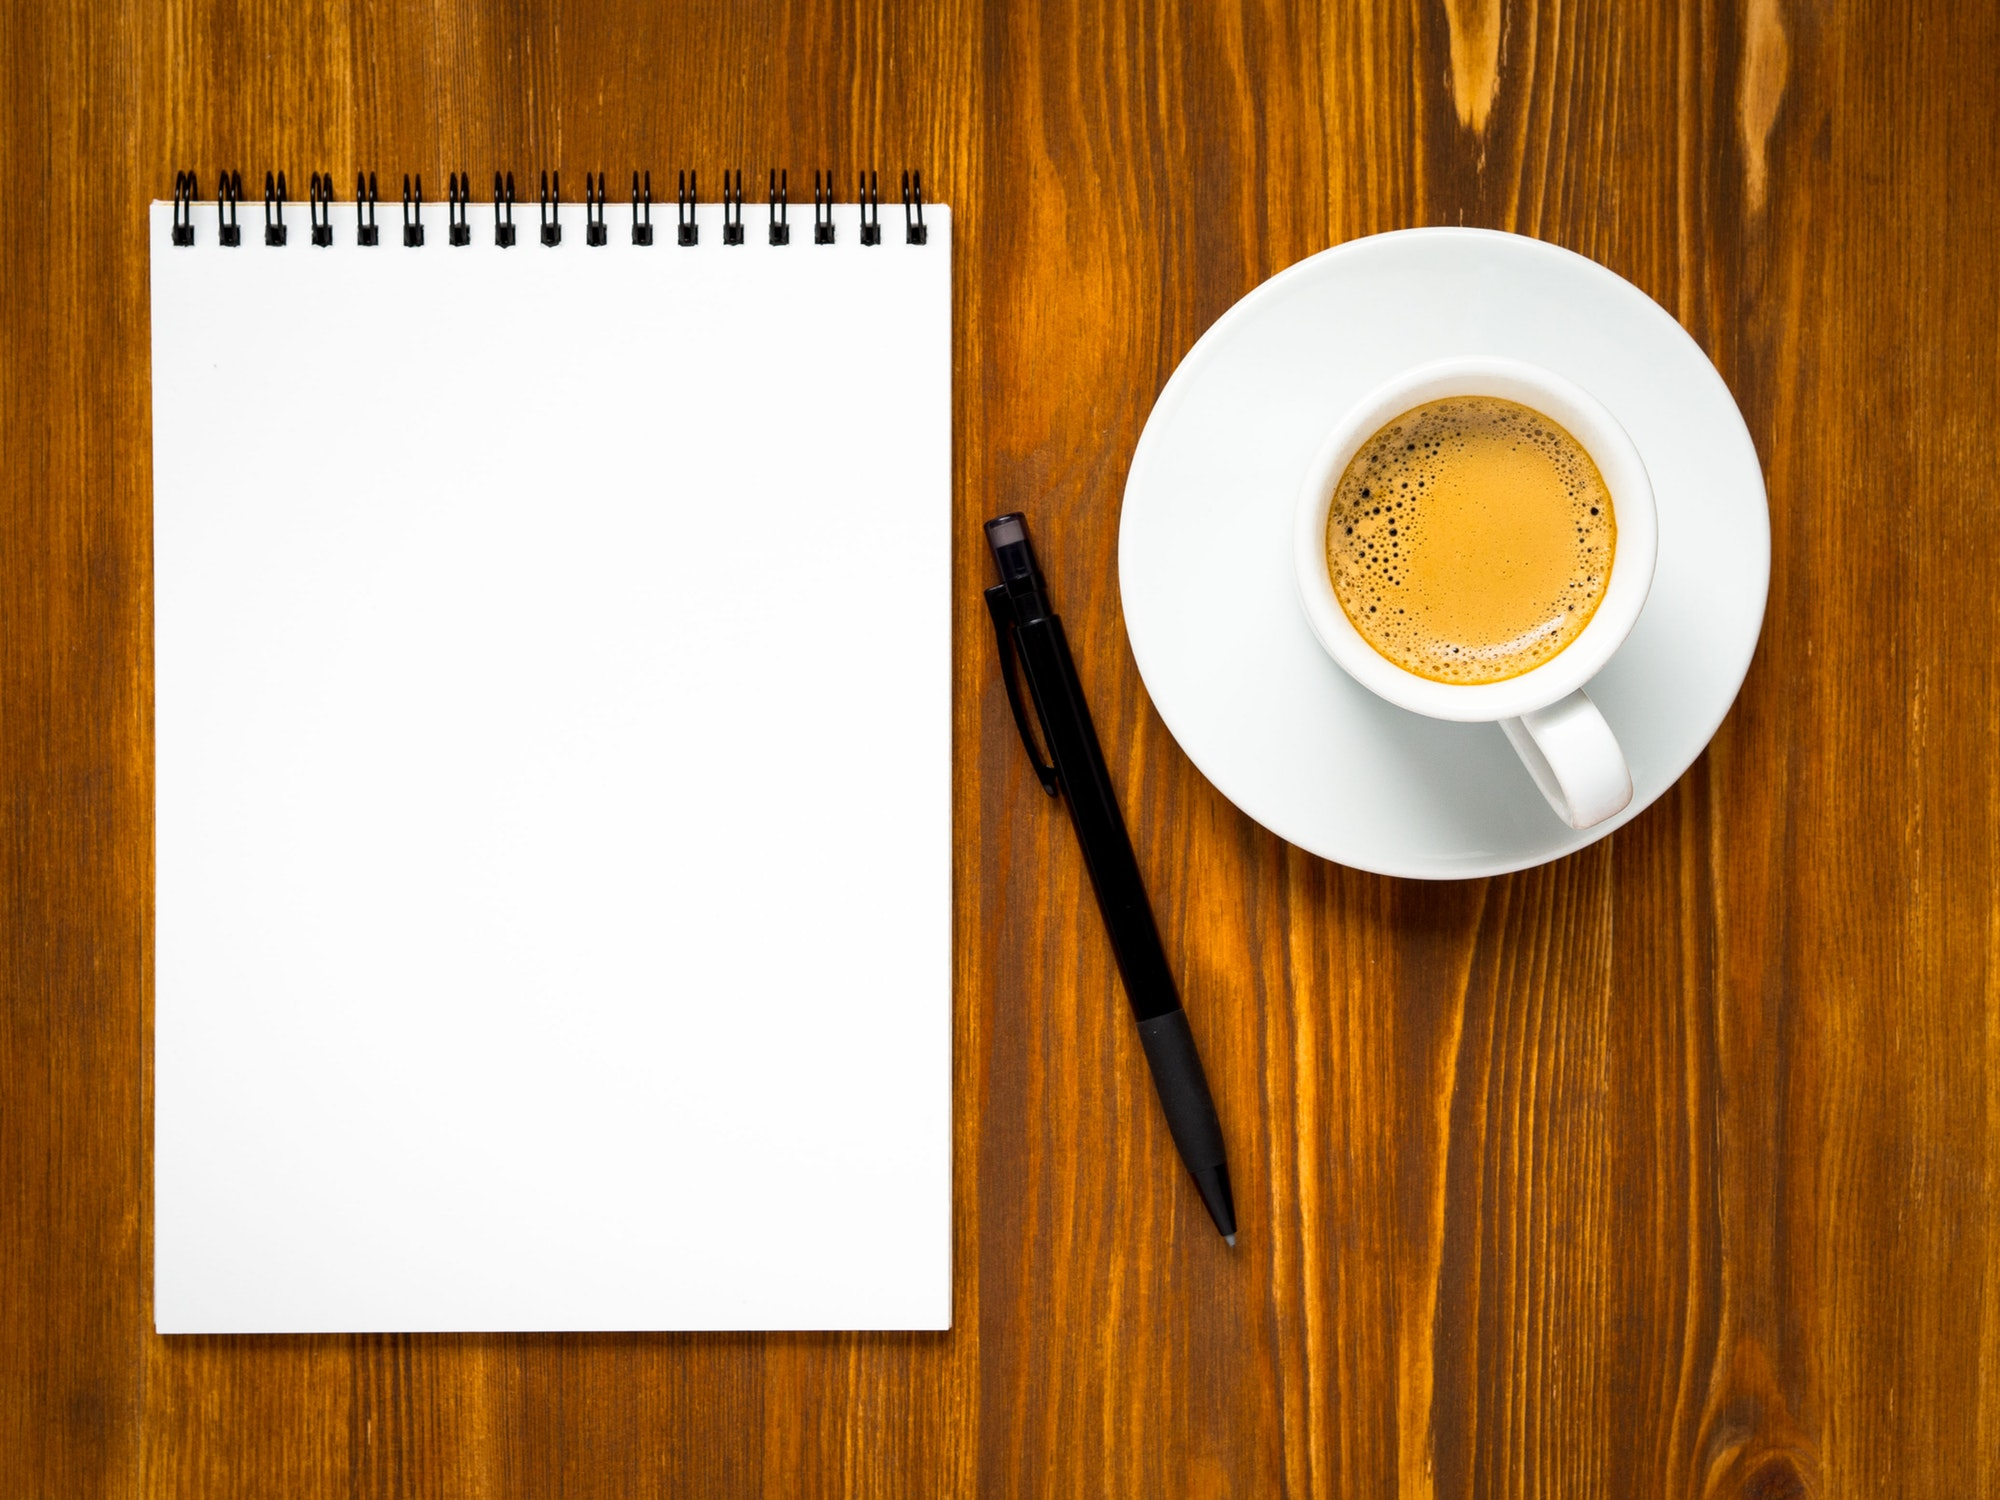 Notepad open with blank page for writing idea or to-do list